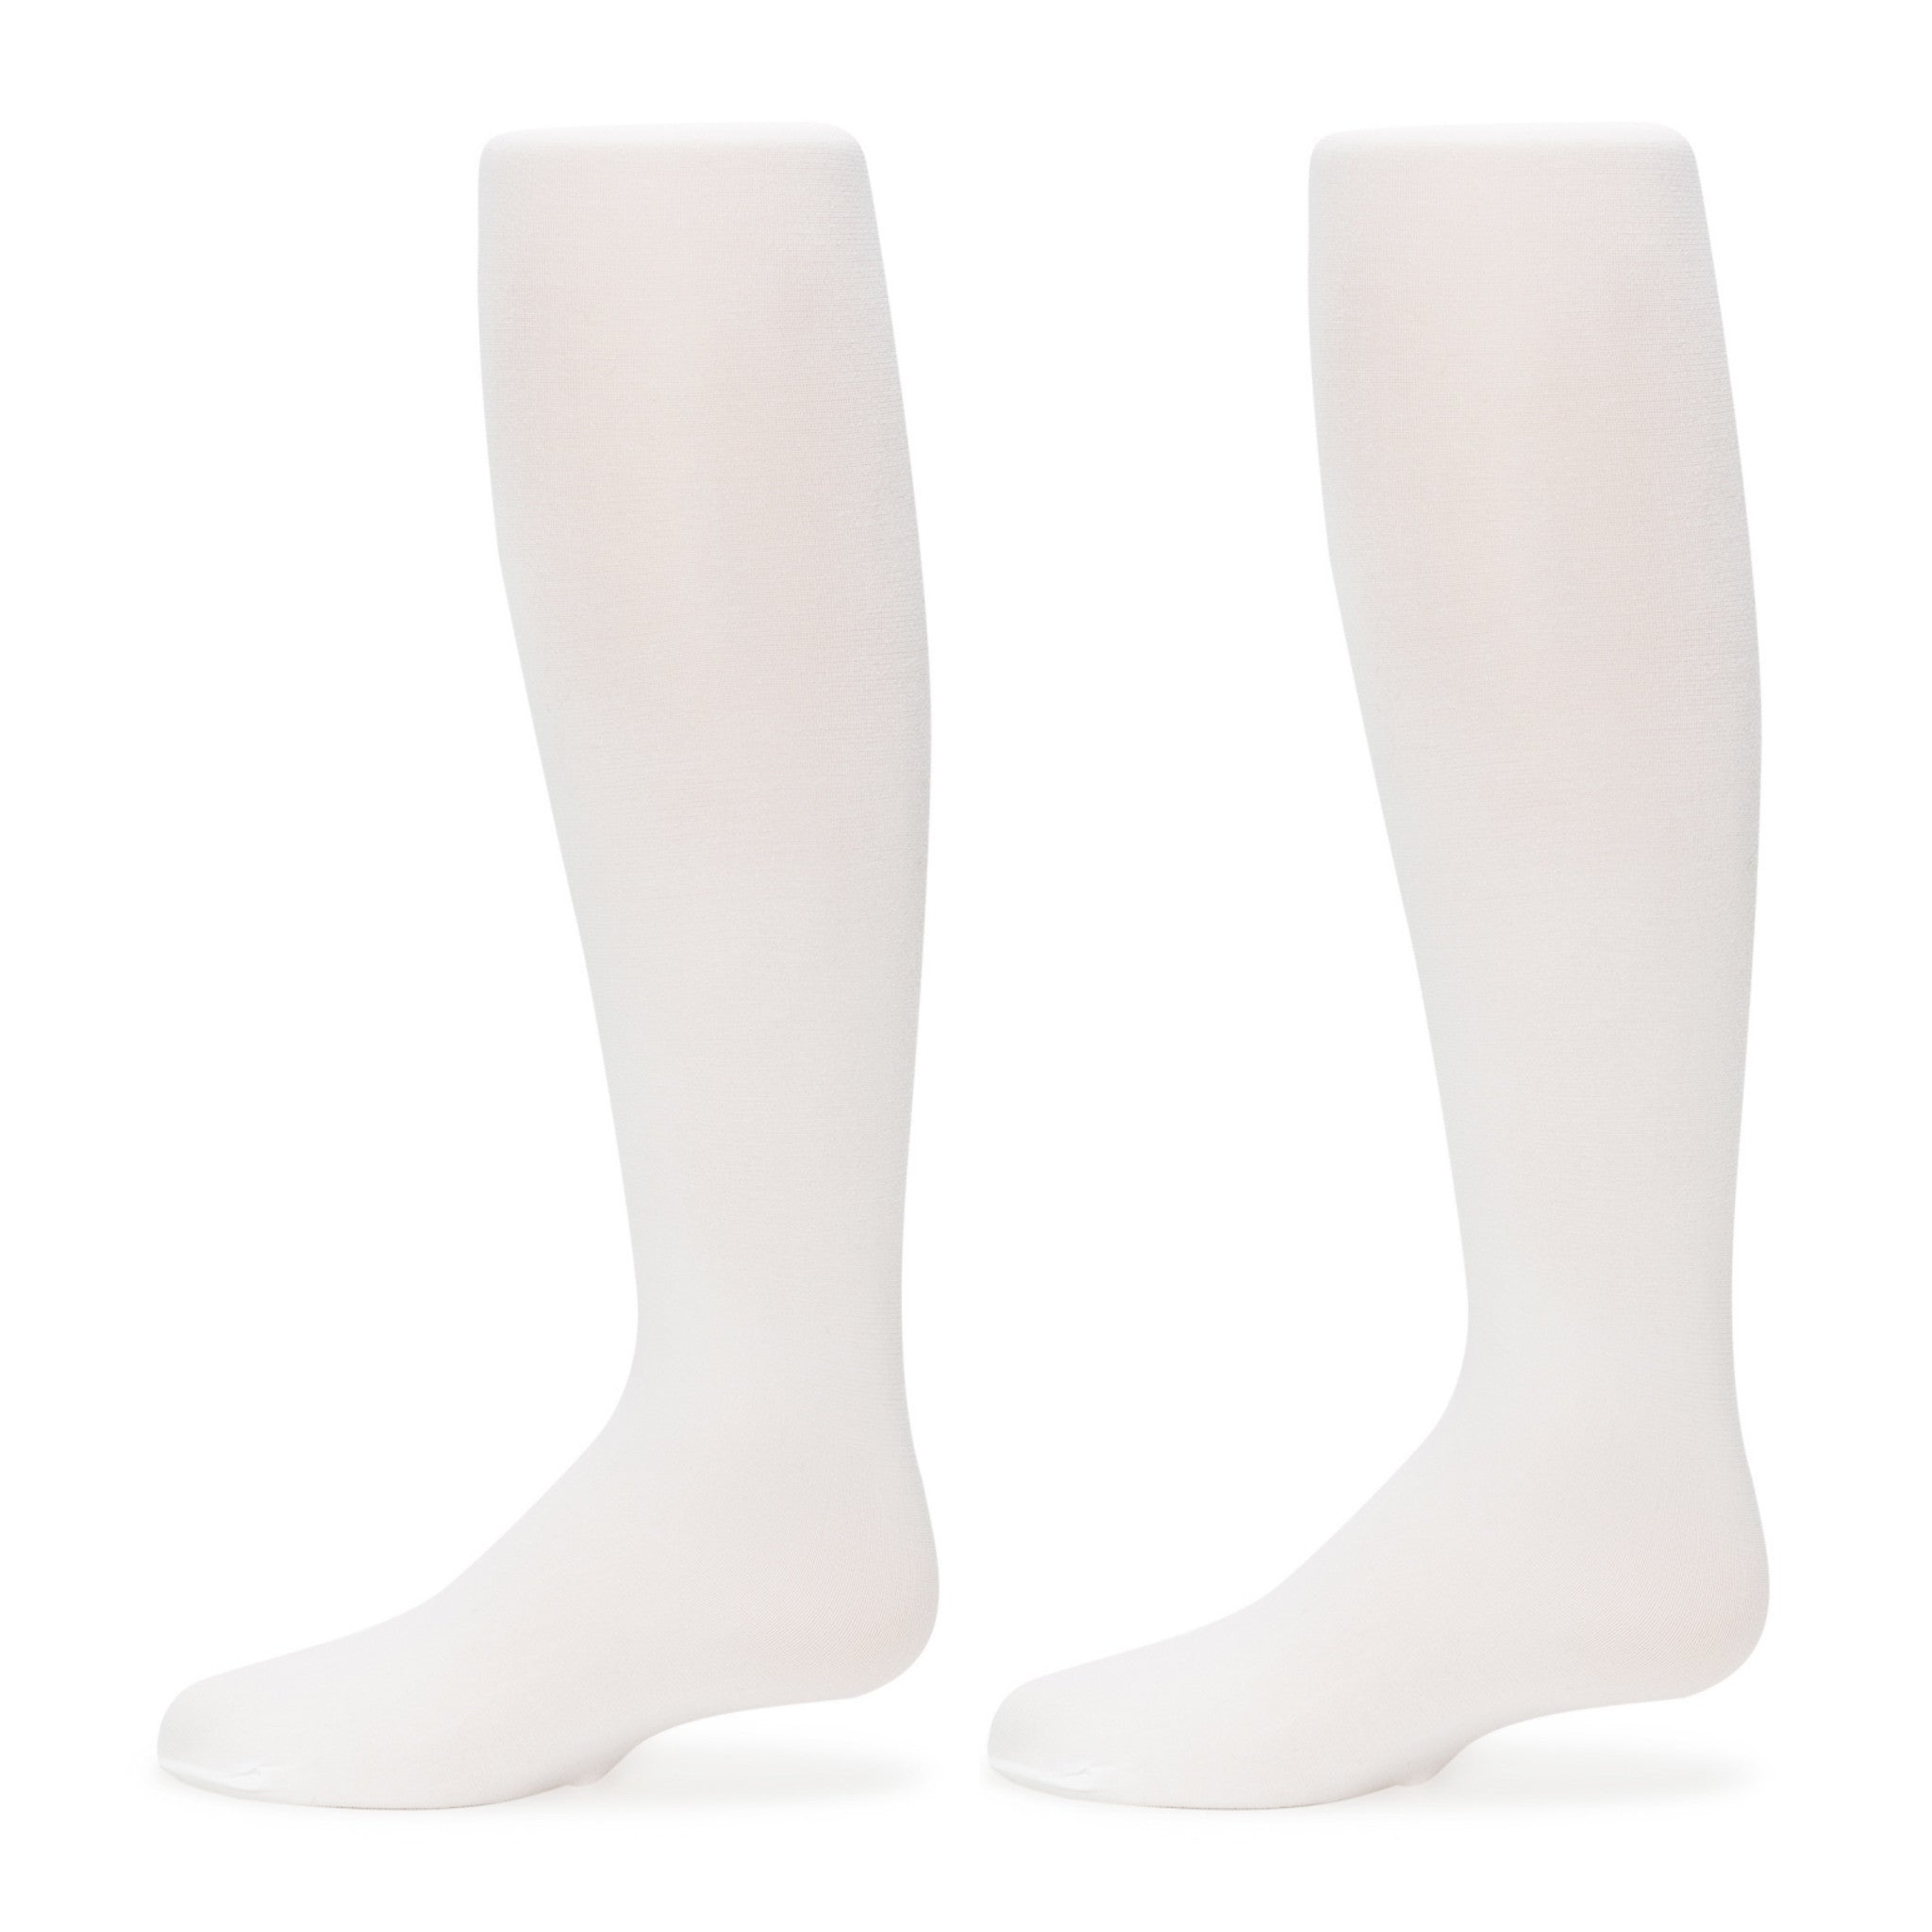 3-Pack Nylon Spandex Microfiber Tights (White)